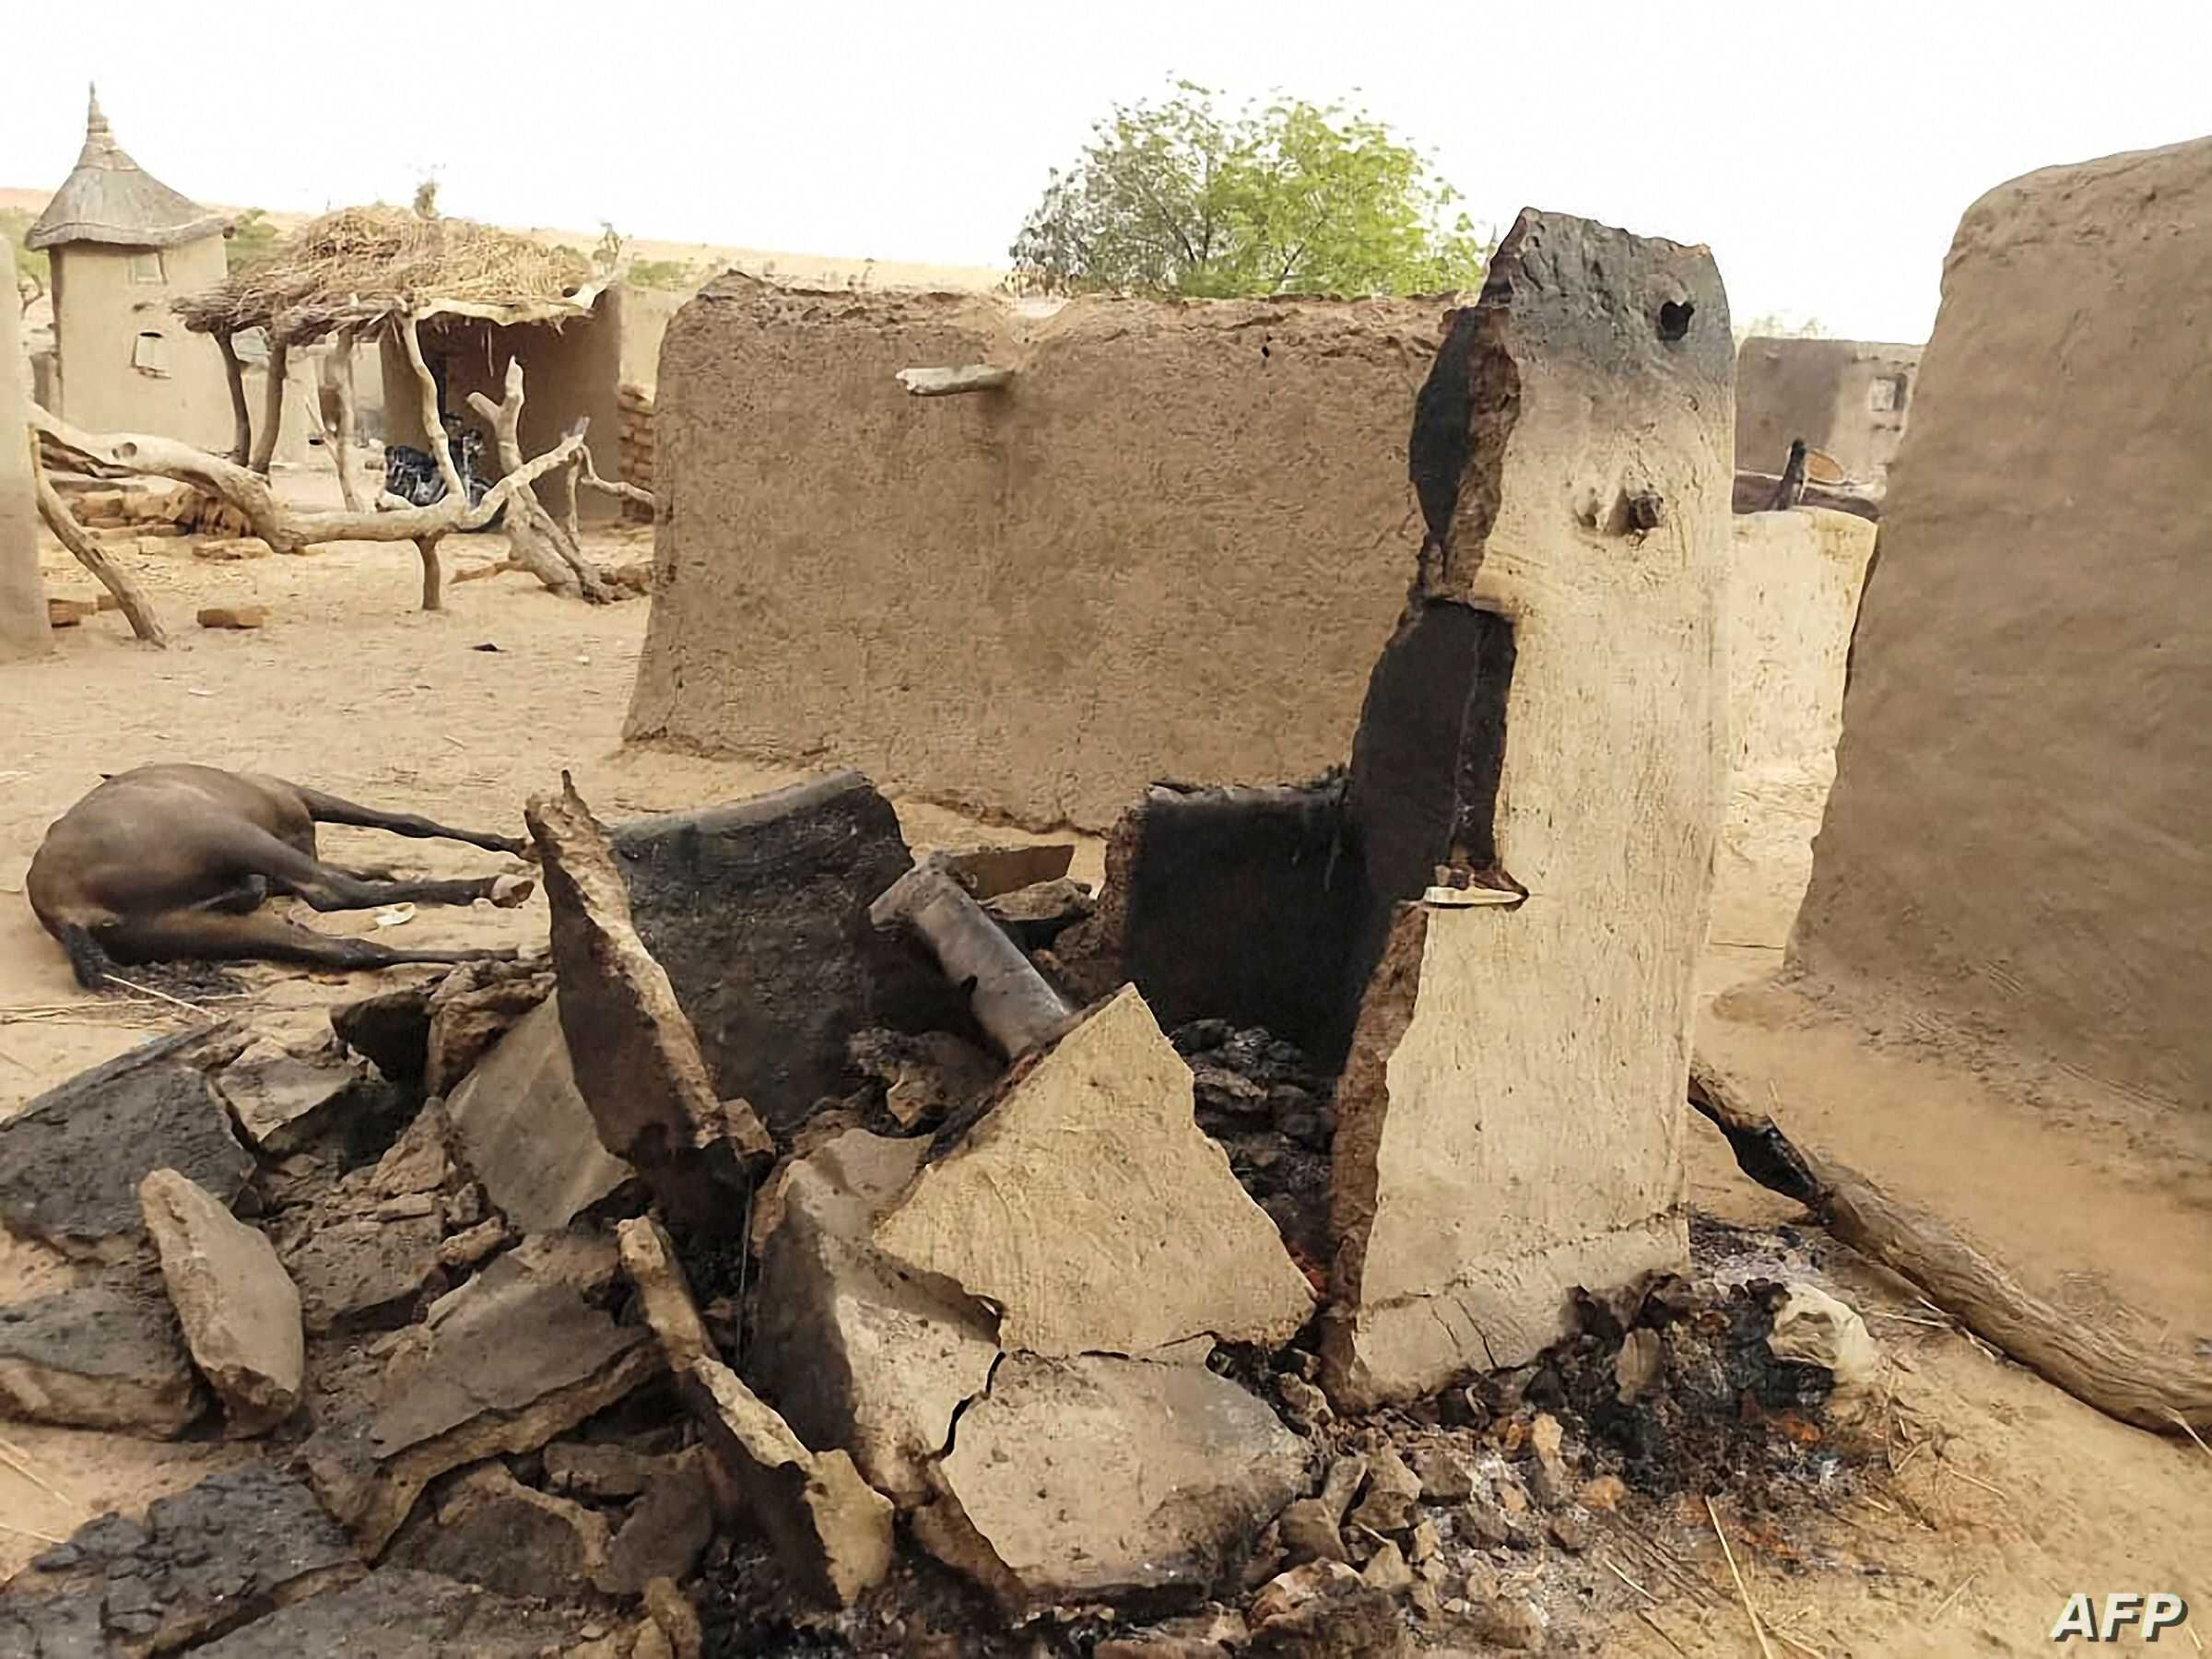 A destroyed home is seen on June 11, 2019 in the Dogon village of Sobane-Kou, near Sangha, after an attack that killed over 100 ethnic Dogon on June 9, 2019 evening.